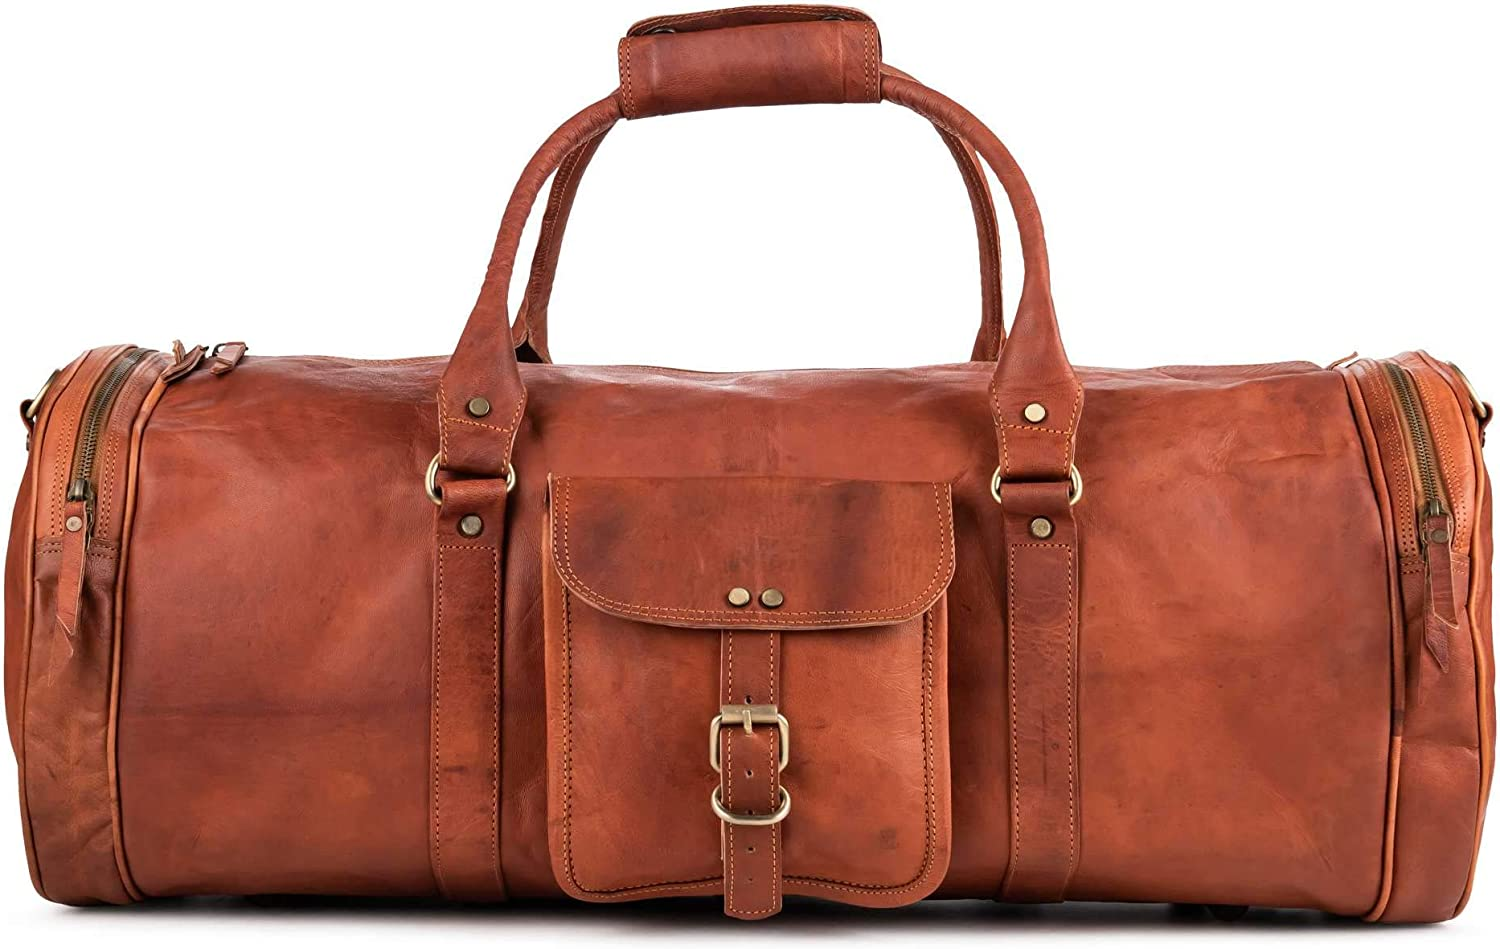 Berliner Bags Vintage Leather Duffle Bag Ranking TOP11 Texas Travel or Purchase XL for